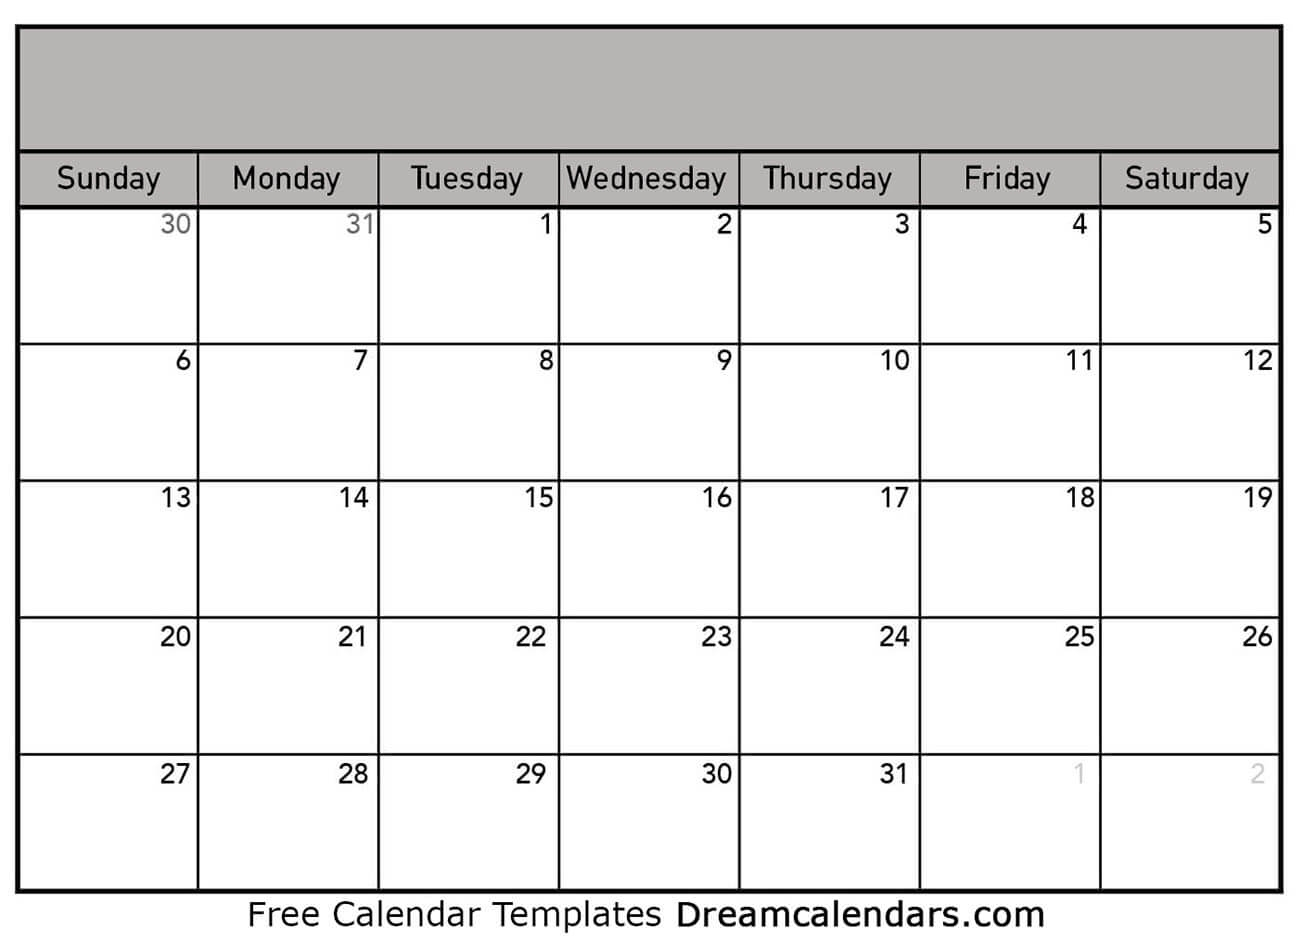 Printable Blank Calendar 2021 | Dream Calendars pertaining to Blank Calendars With Days Of The Week Not Numbered